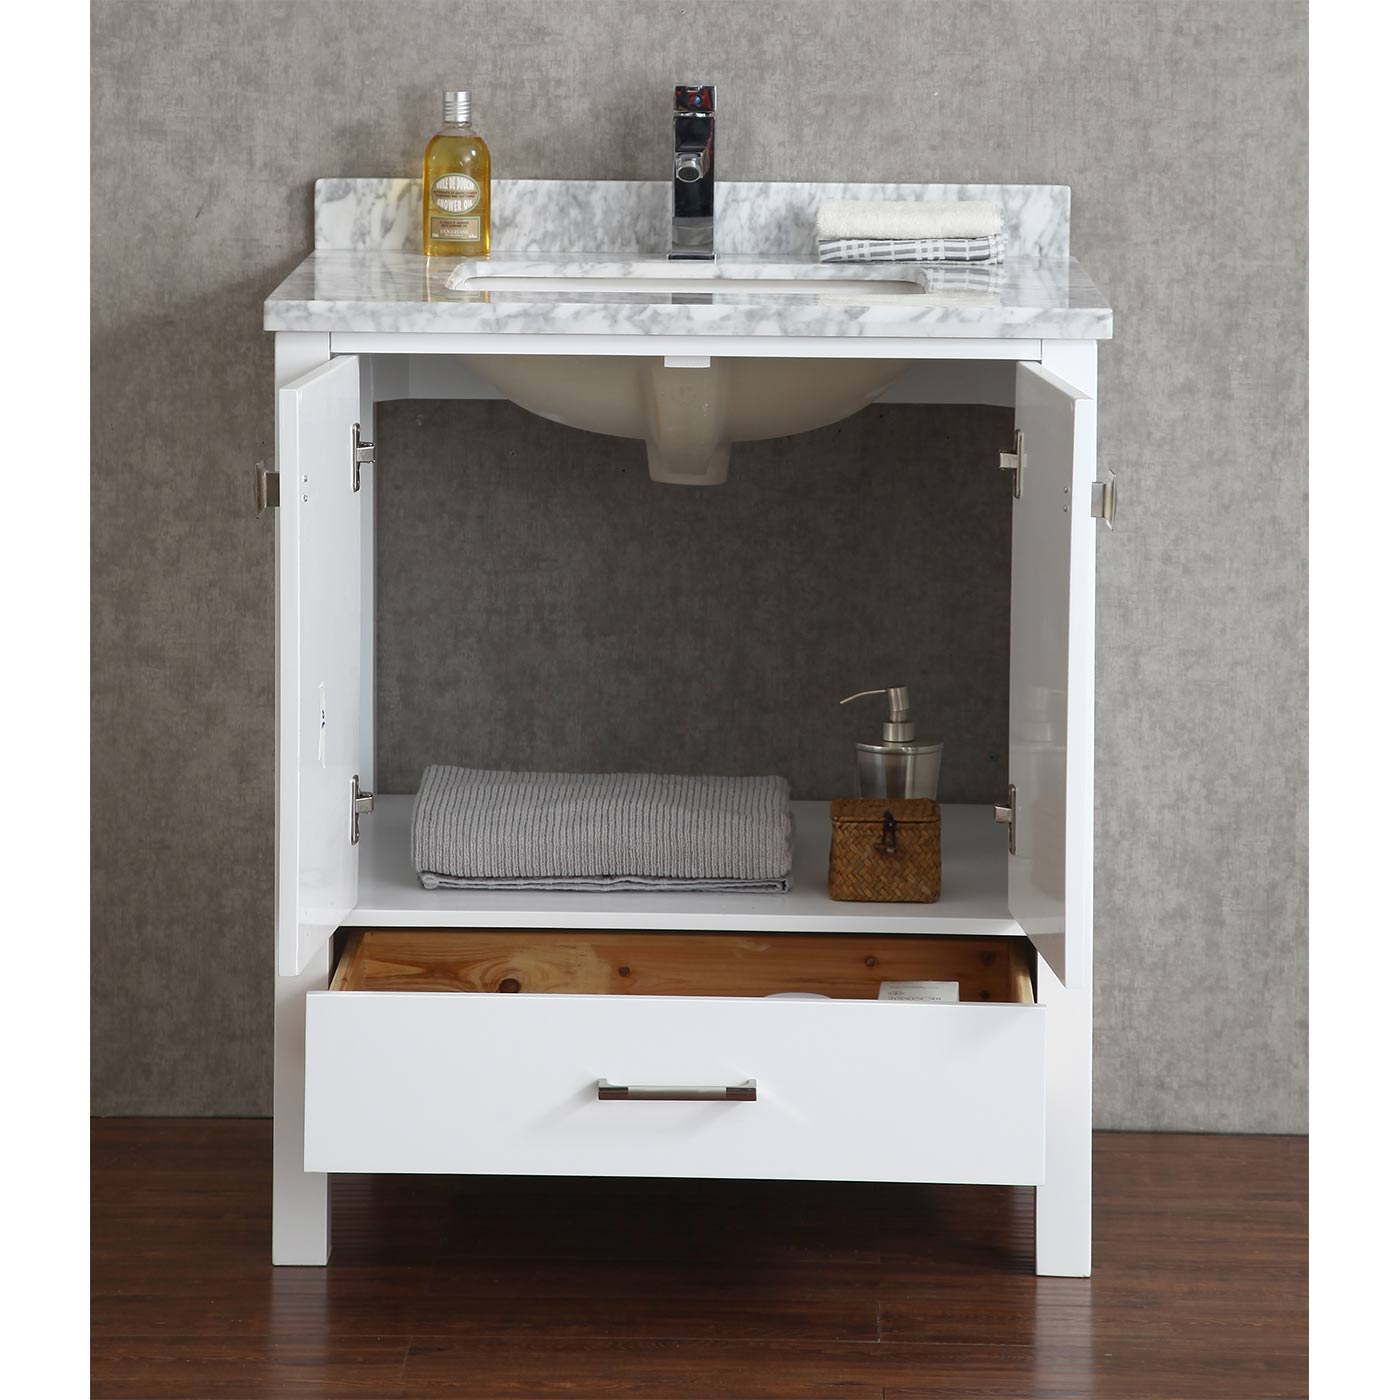 30 Floating Bathroom Vanity Buy Vincent 30 Inch Solid Wood Double Bathroom Vanity In